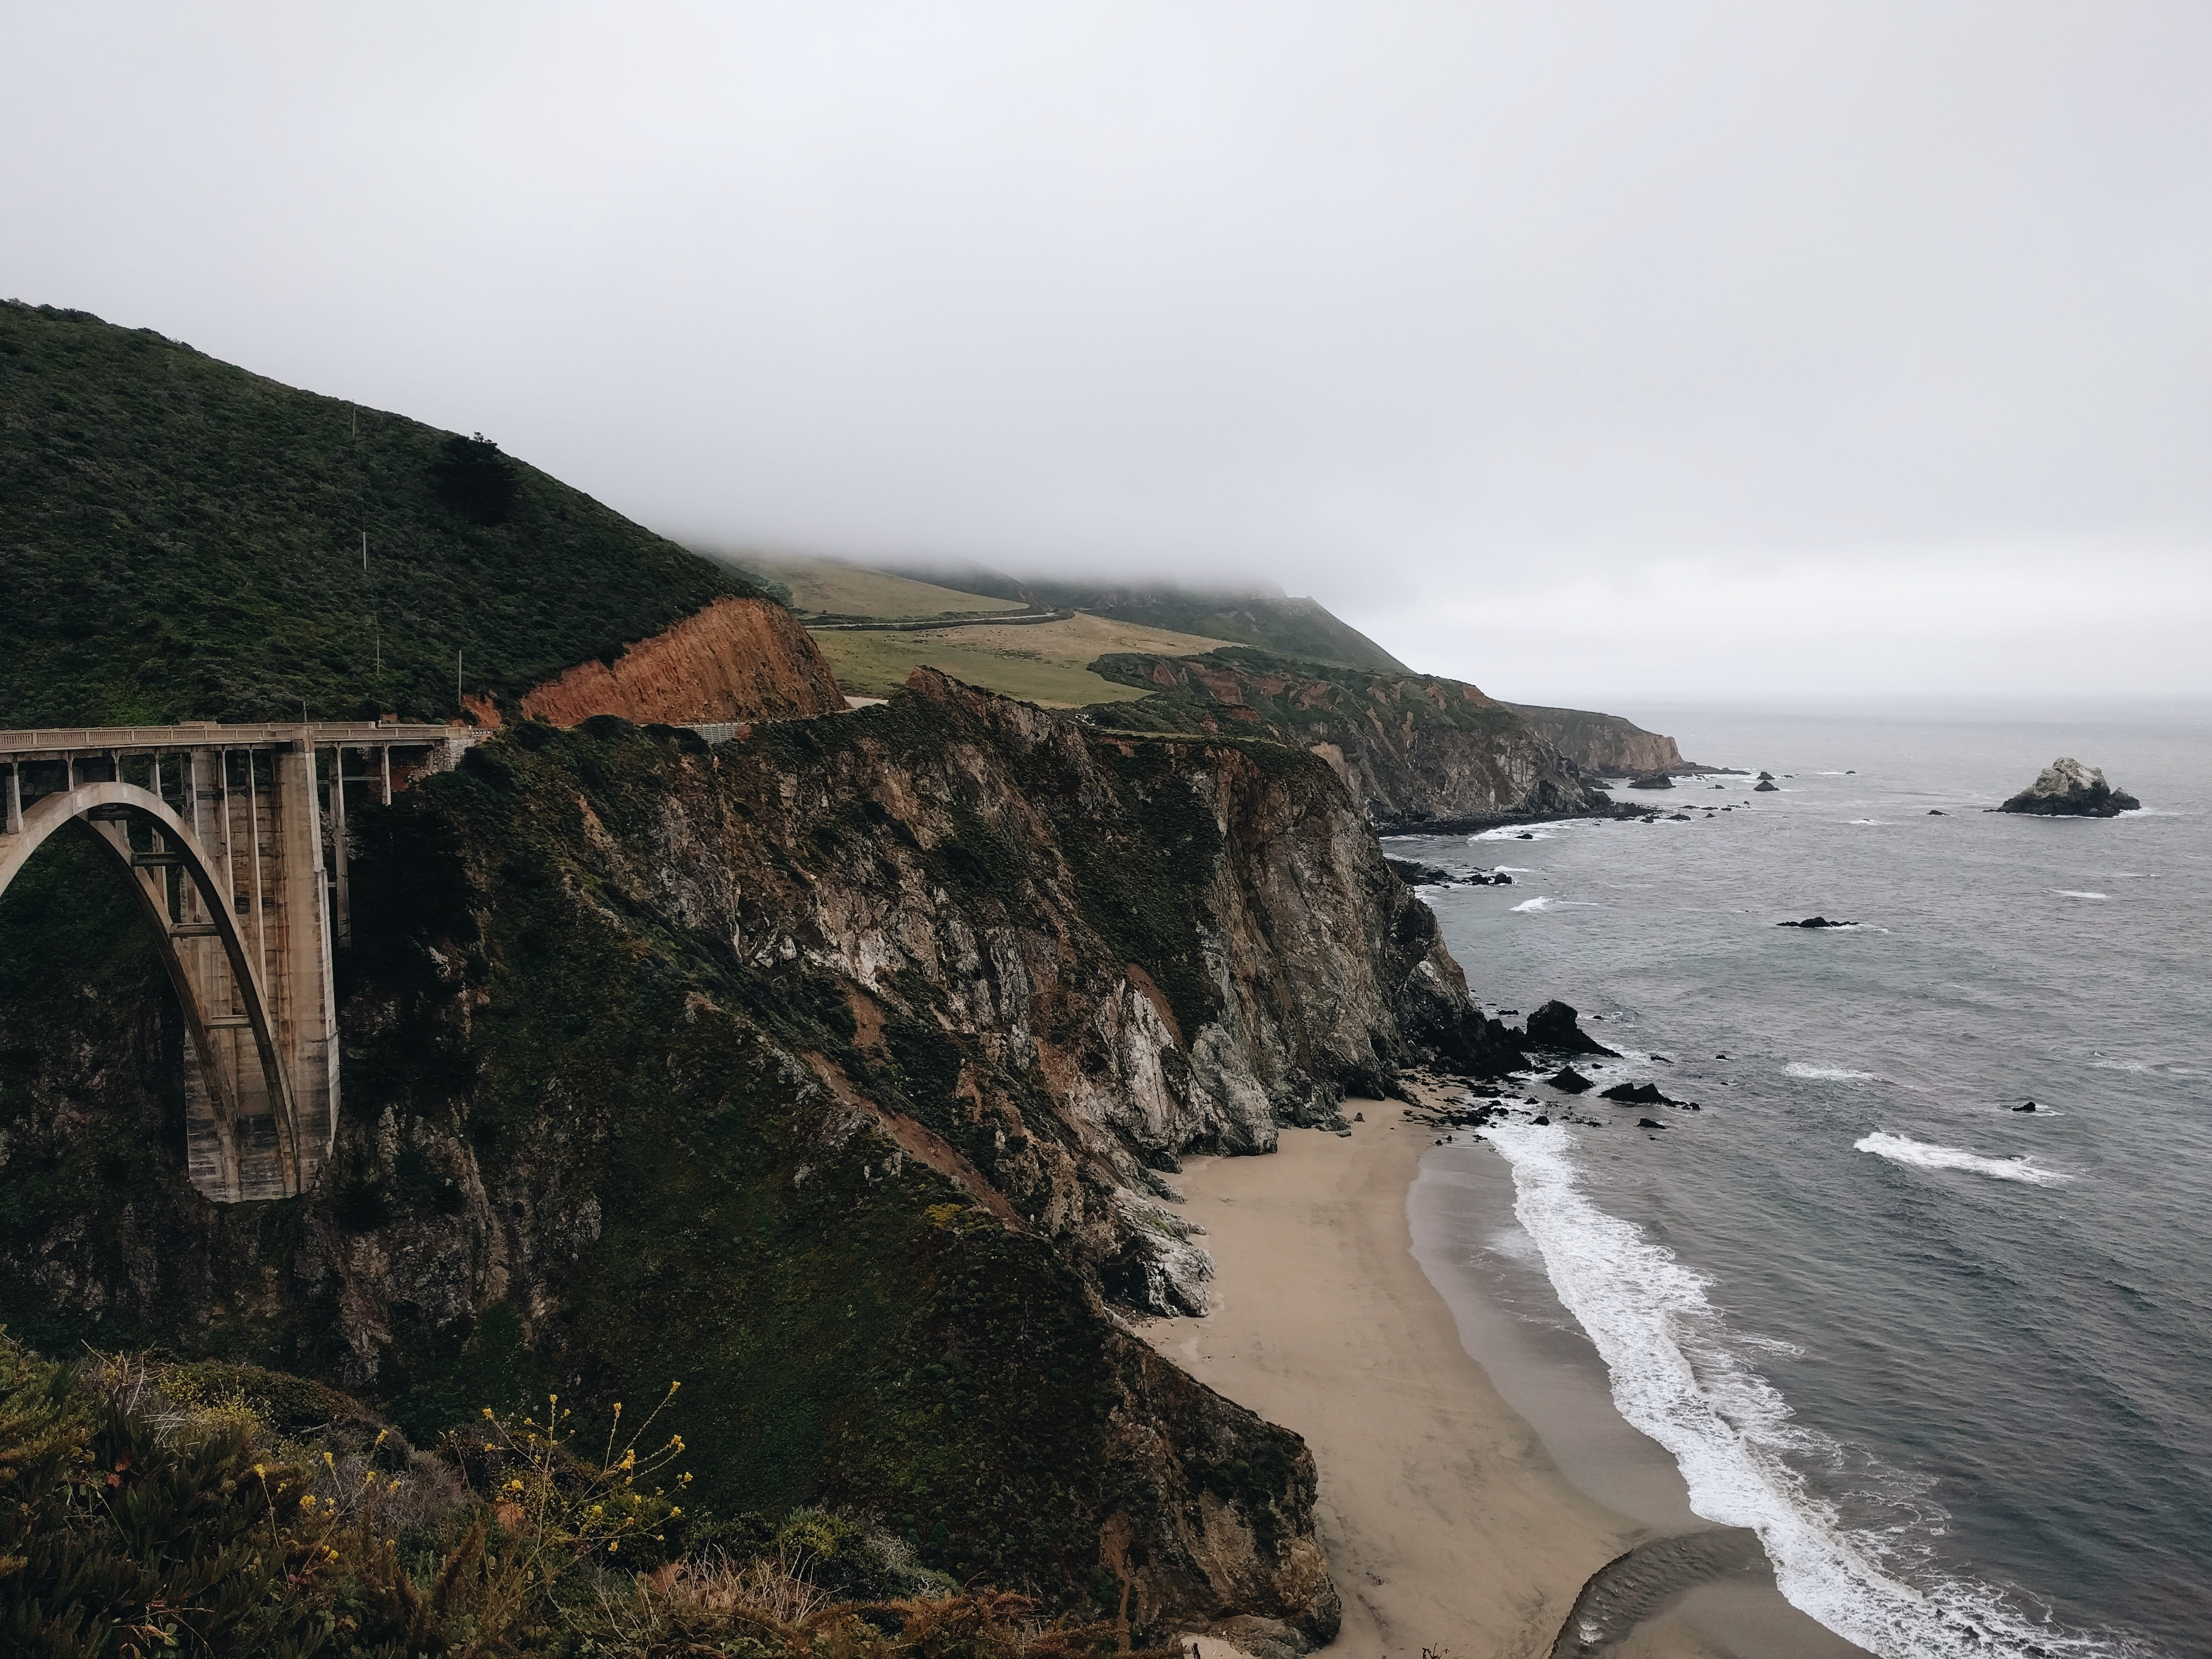 Bridge on the tall rocky shoreline on a cloudy day in Monterey,